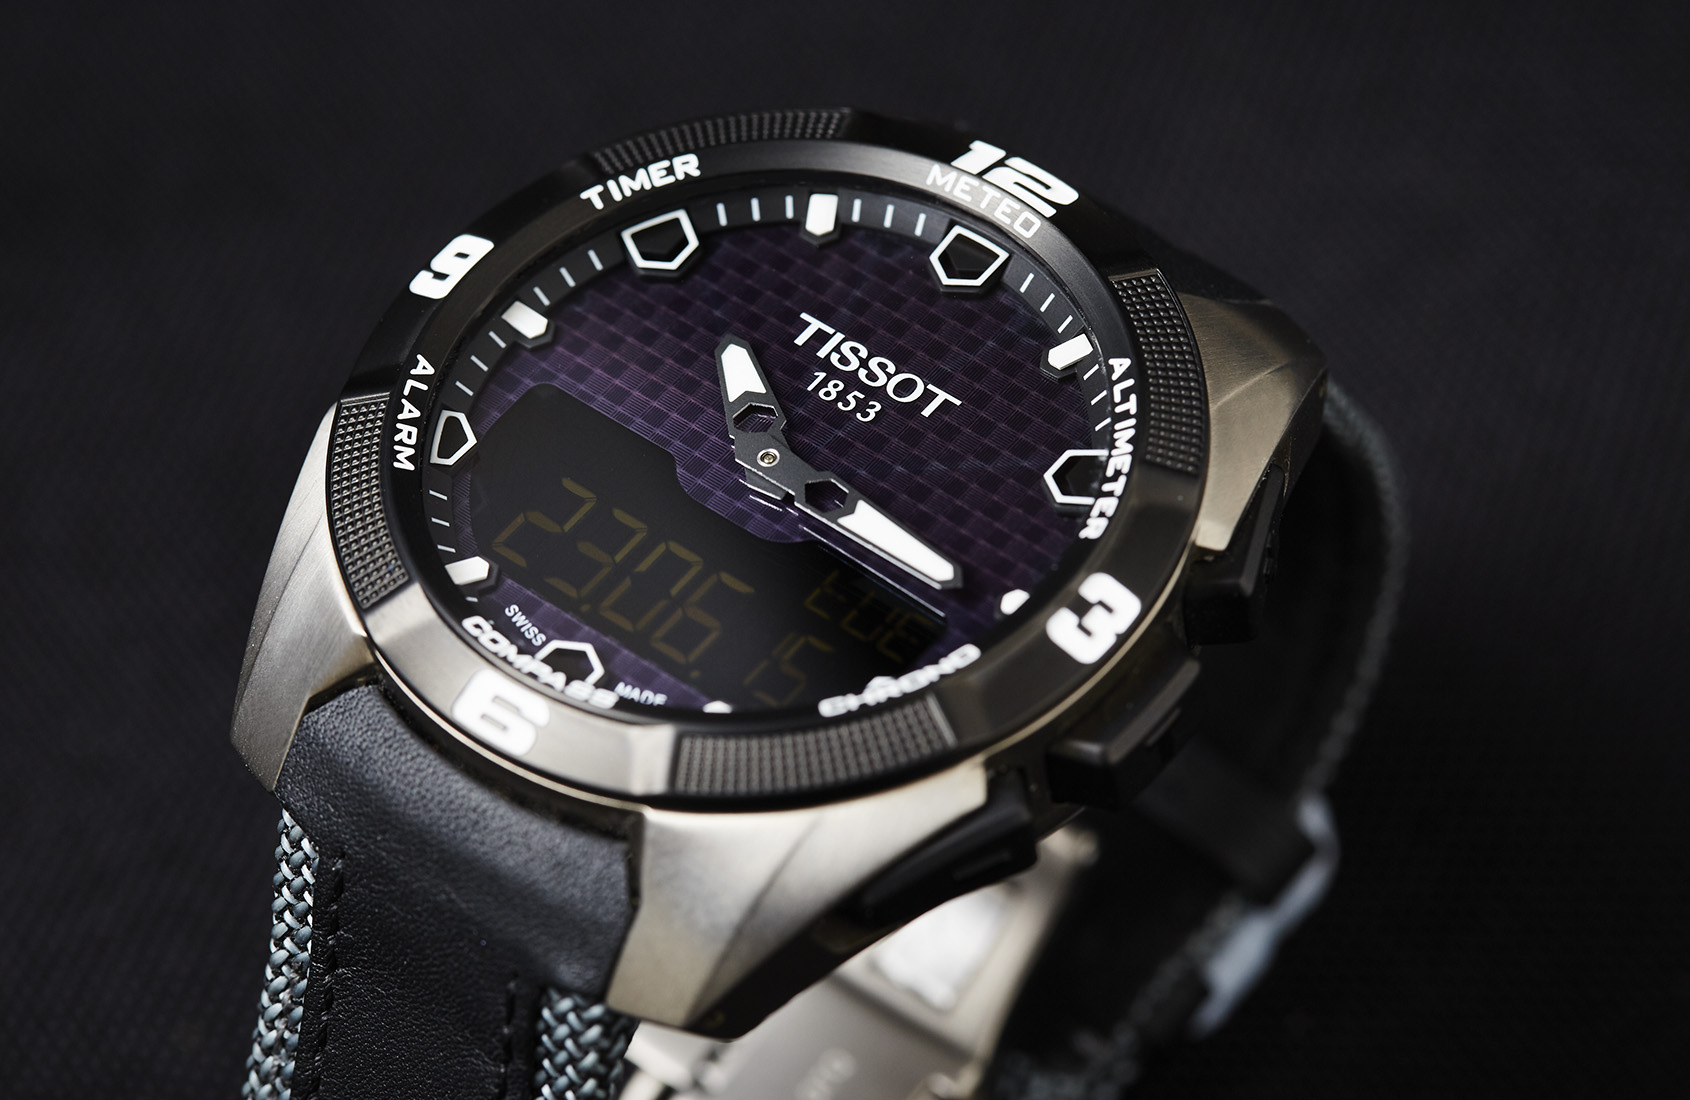 IN-DEPTH: The Tissot T-Touch Expert Solar